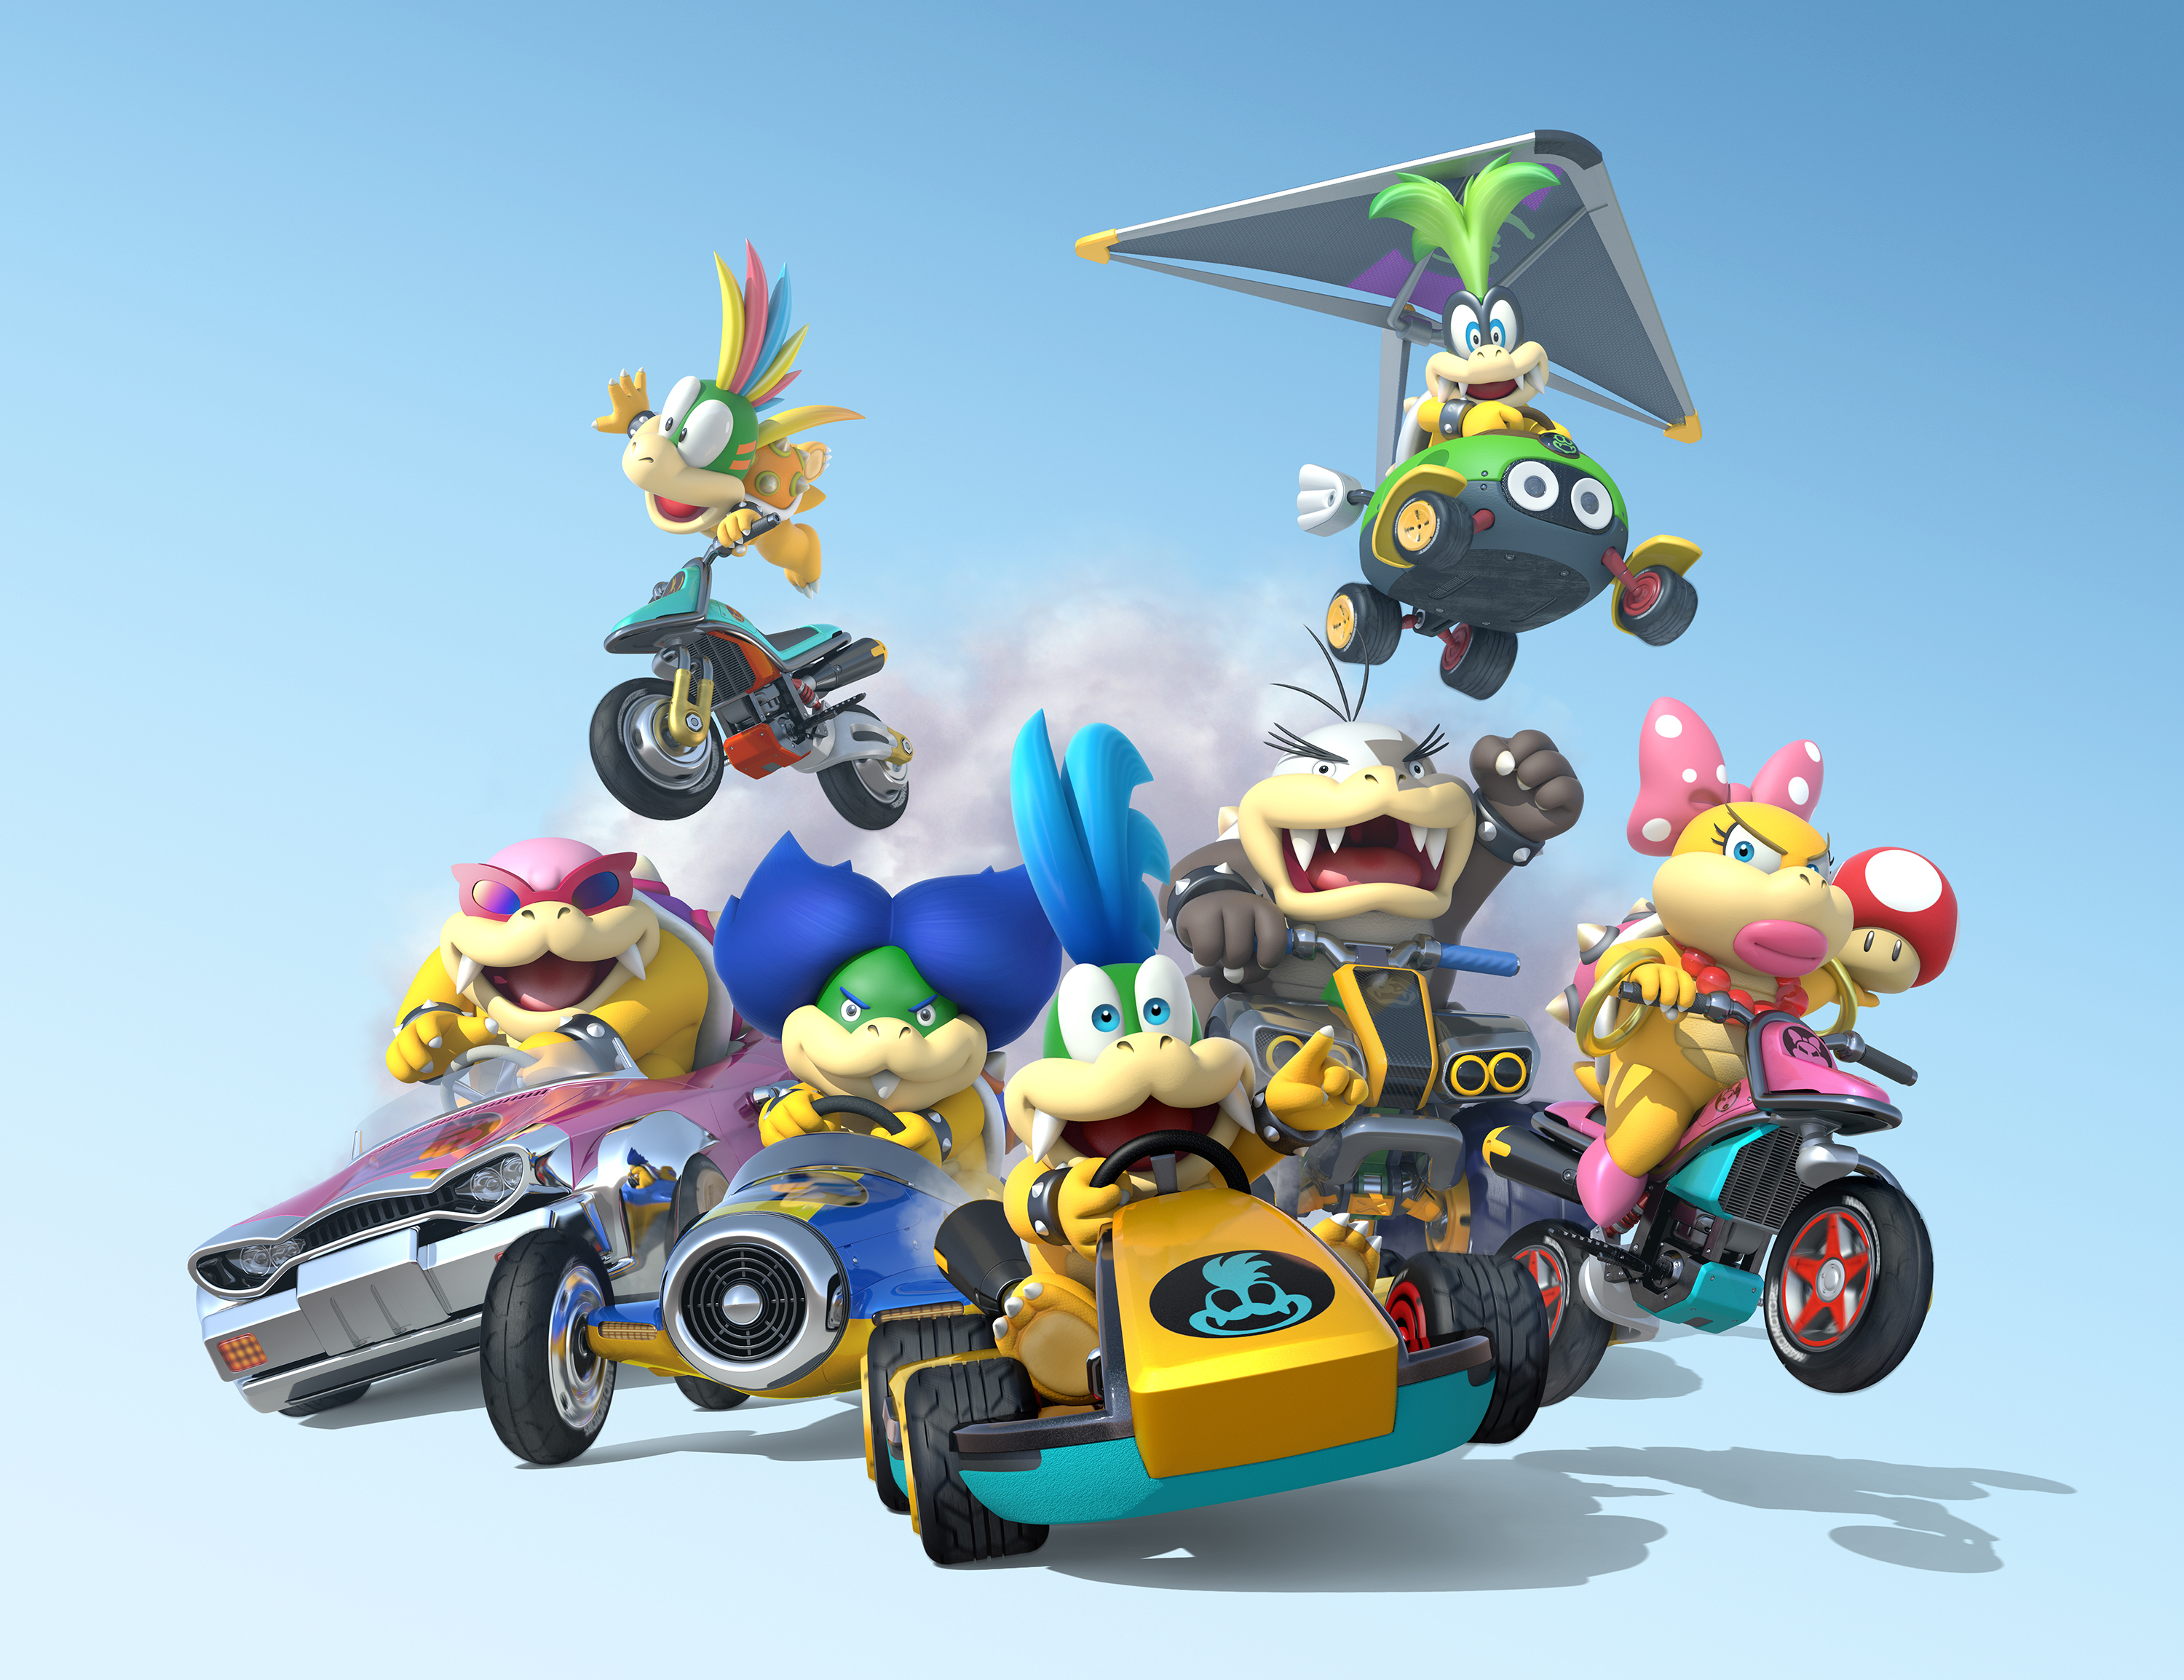 Mario kart 8 looses the koopalings all seven playable when mk8 launches may 30 neoseeker - Mario kart a colorier ...